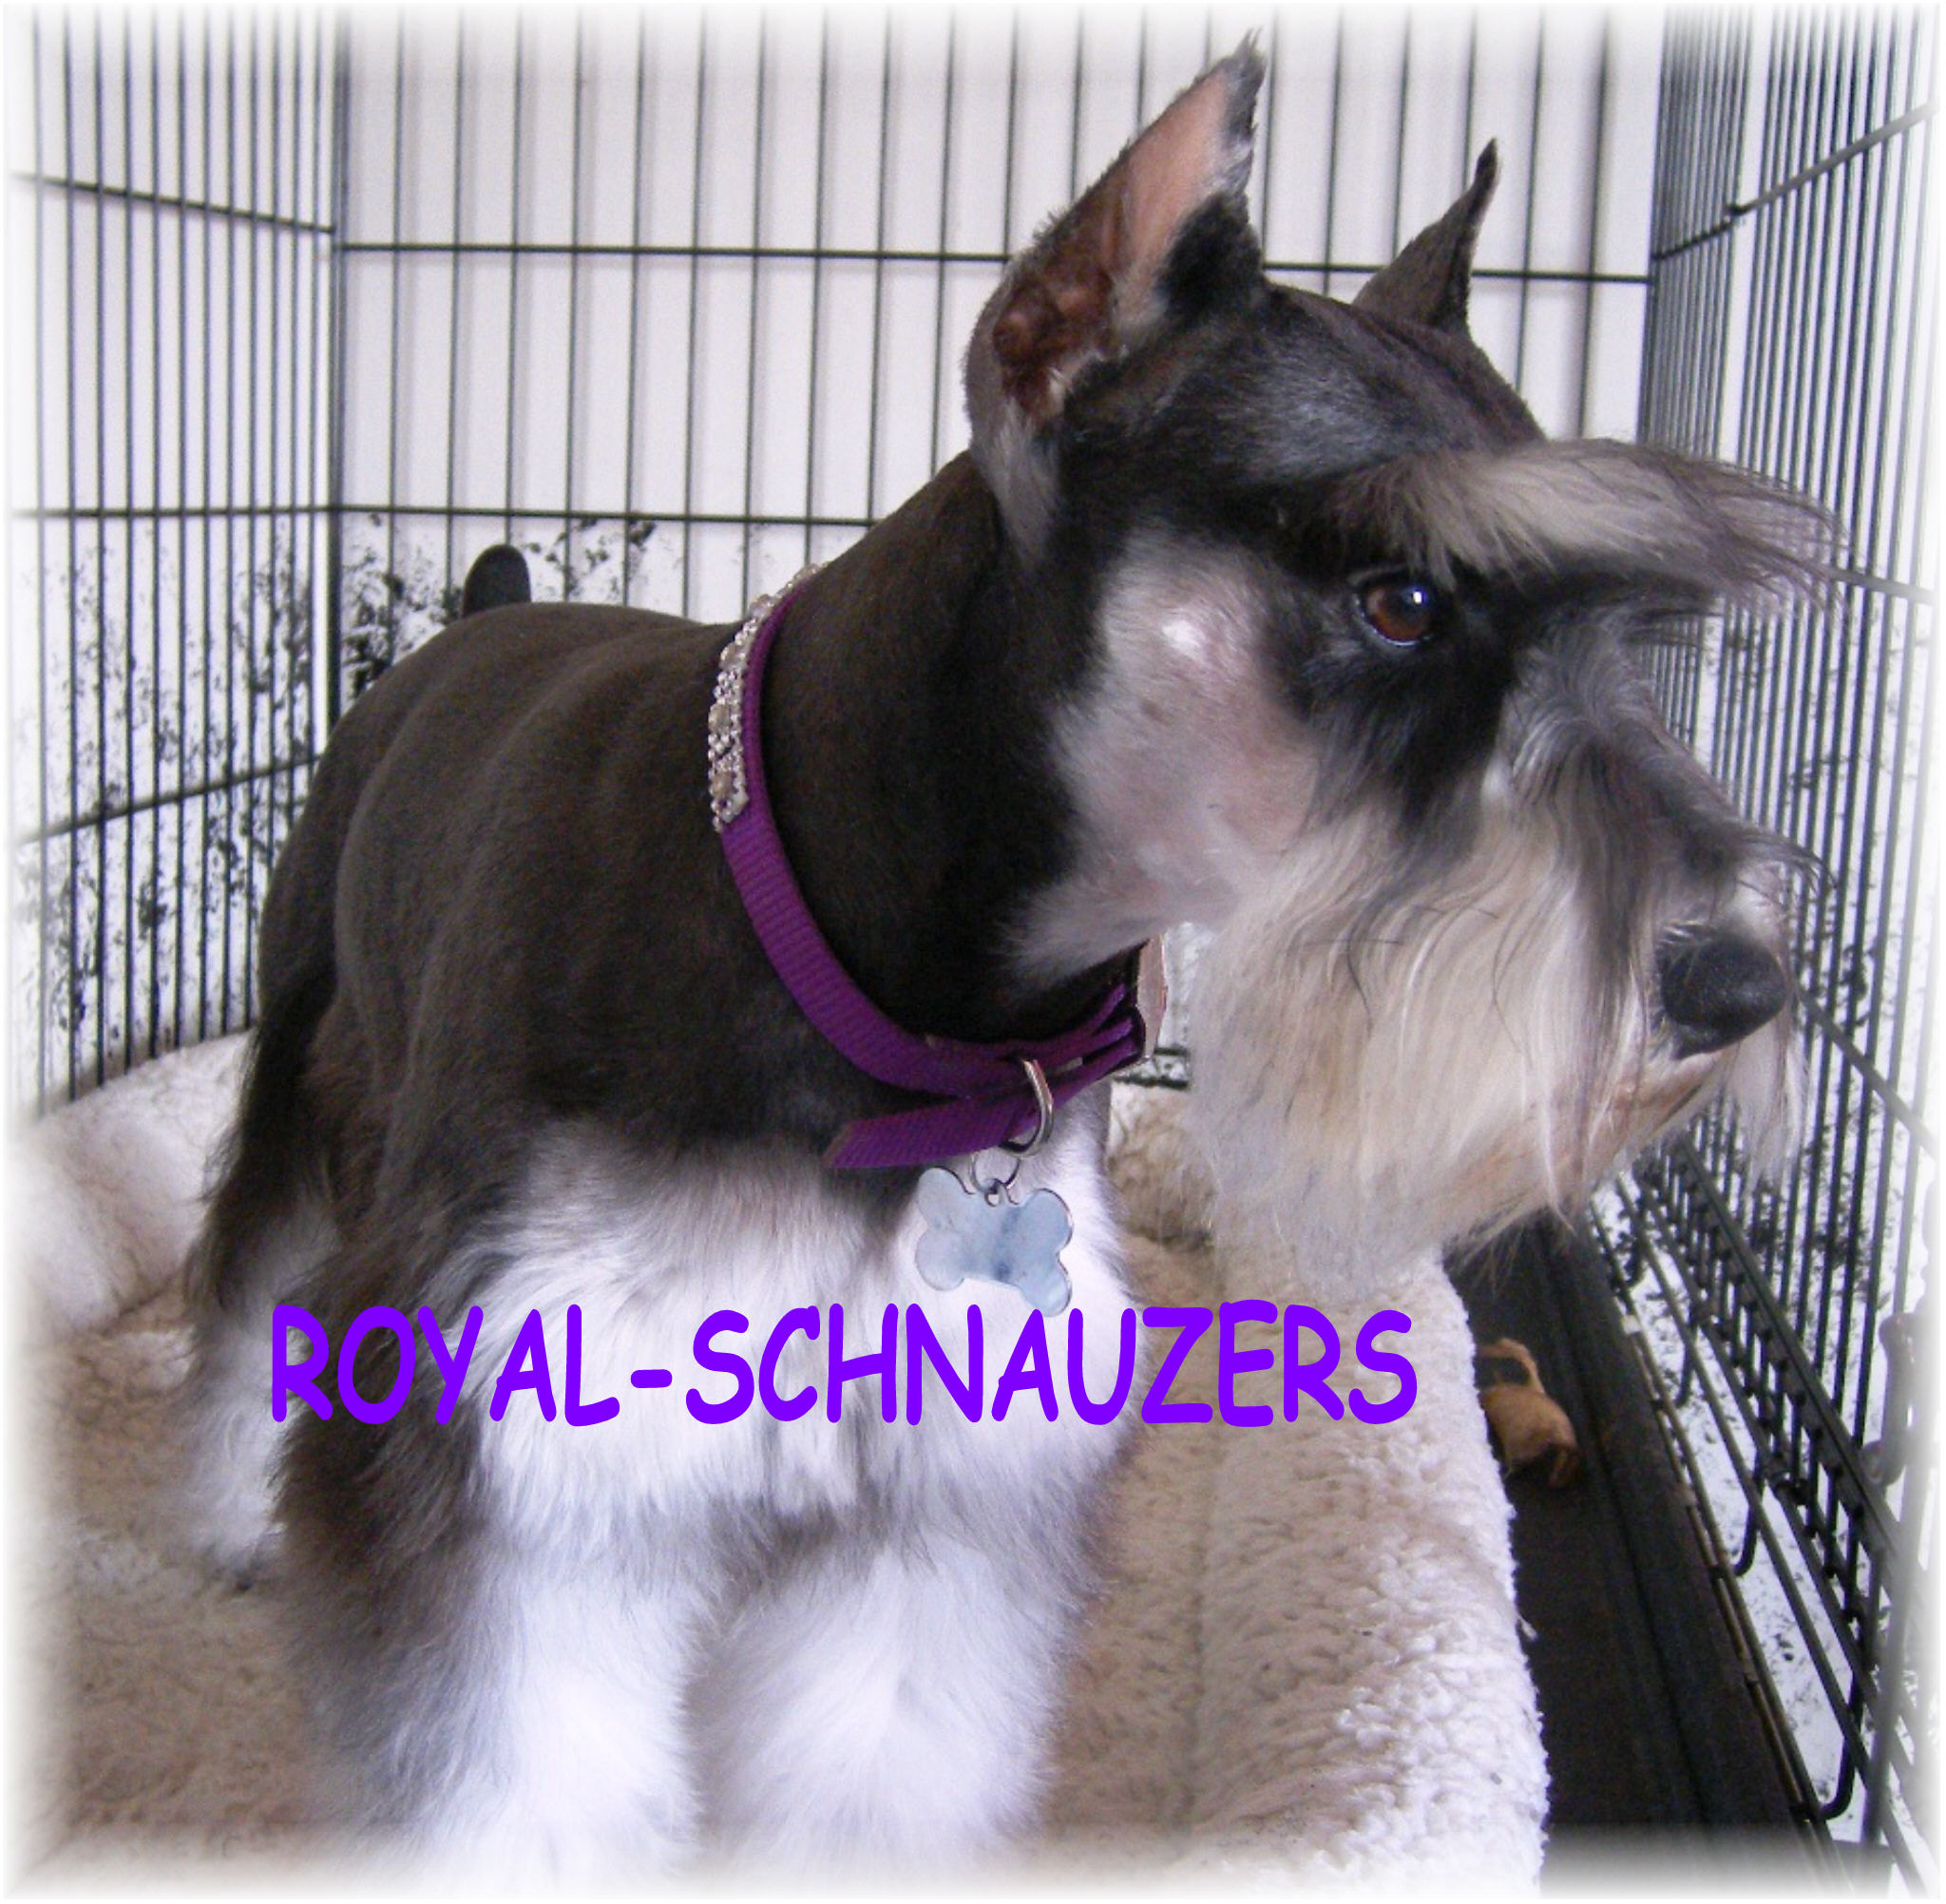 AKC phantom black and silver Toy Miniature Schnauzer puppy. White chocolate teacup miniature schnauzer dam. Liver pepper parti mini schnauzer champion dams and sires. Supercoated Utah and International